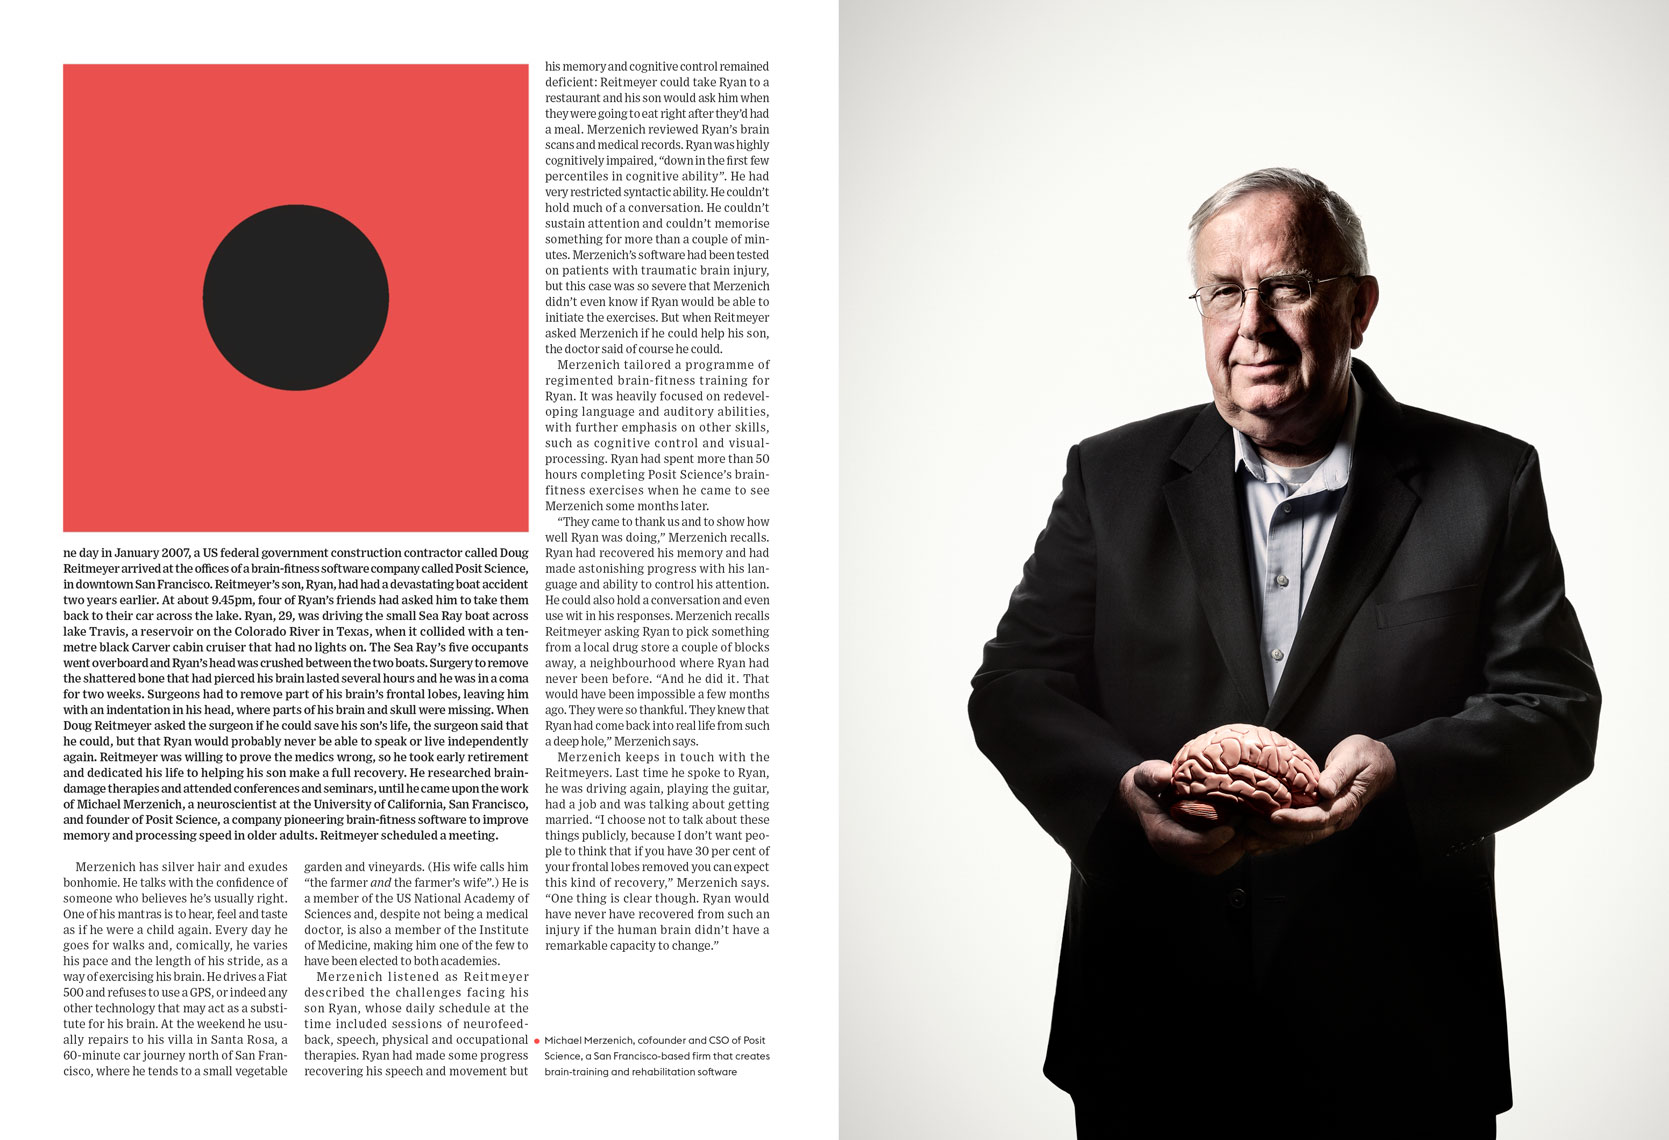 Michael Merzenich for Wired UK May 2014 issue